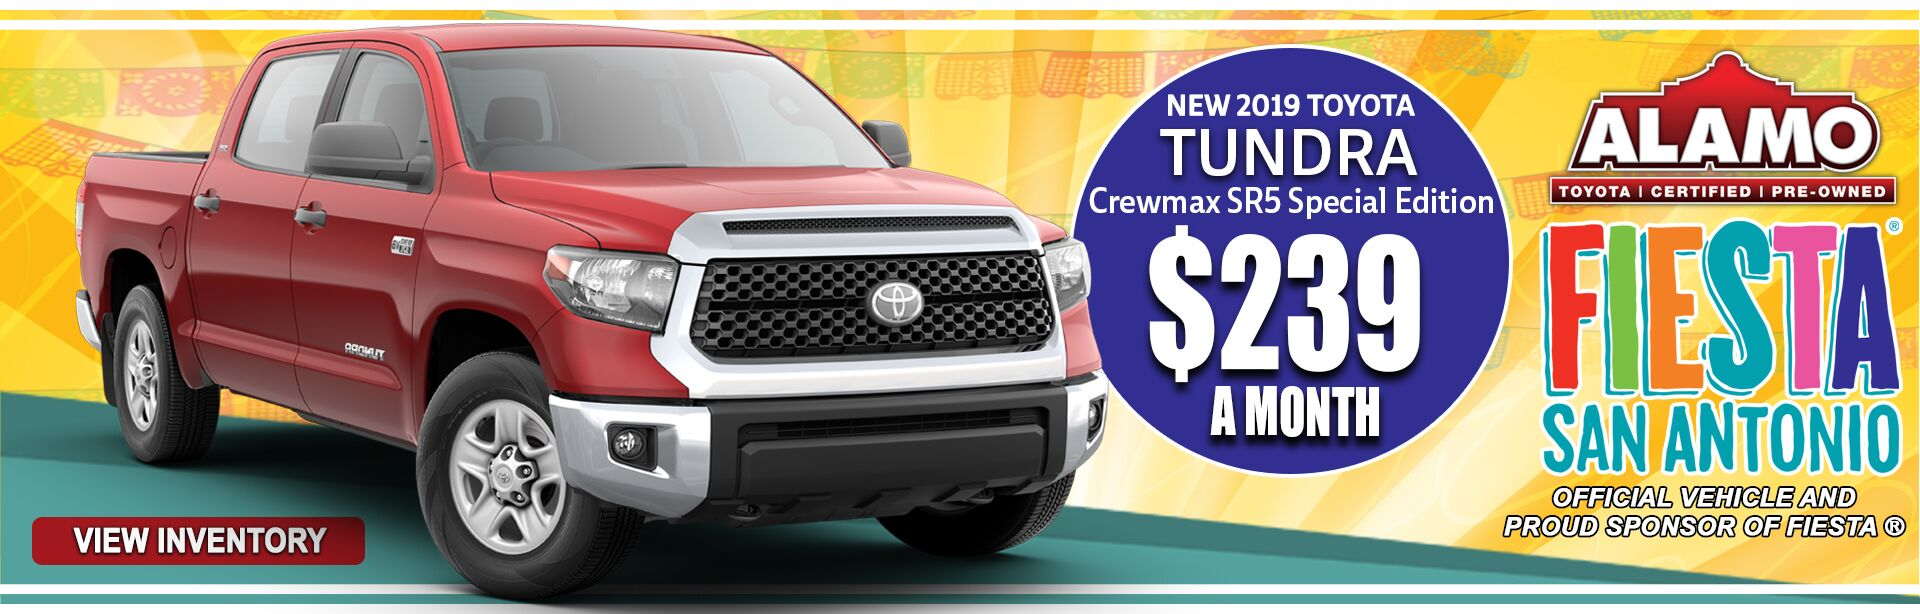 New 2019 Toyota Tundra Crewmax Sr5 Special Edition